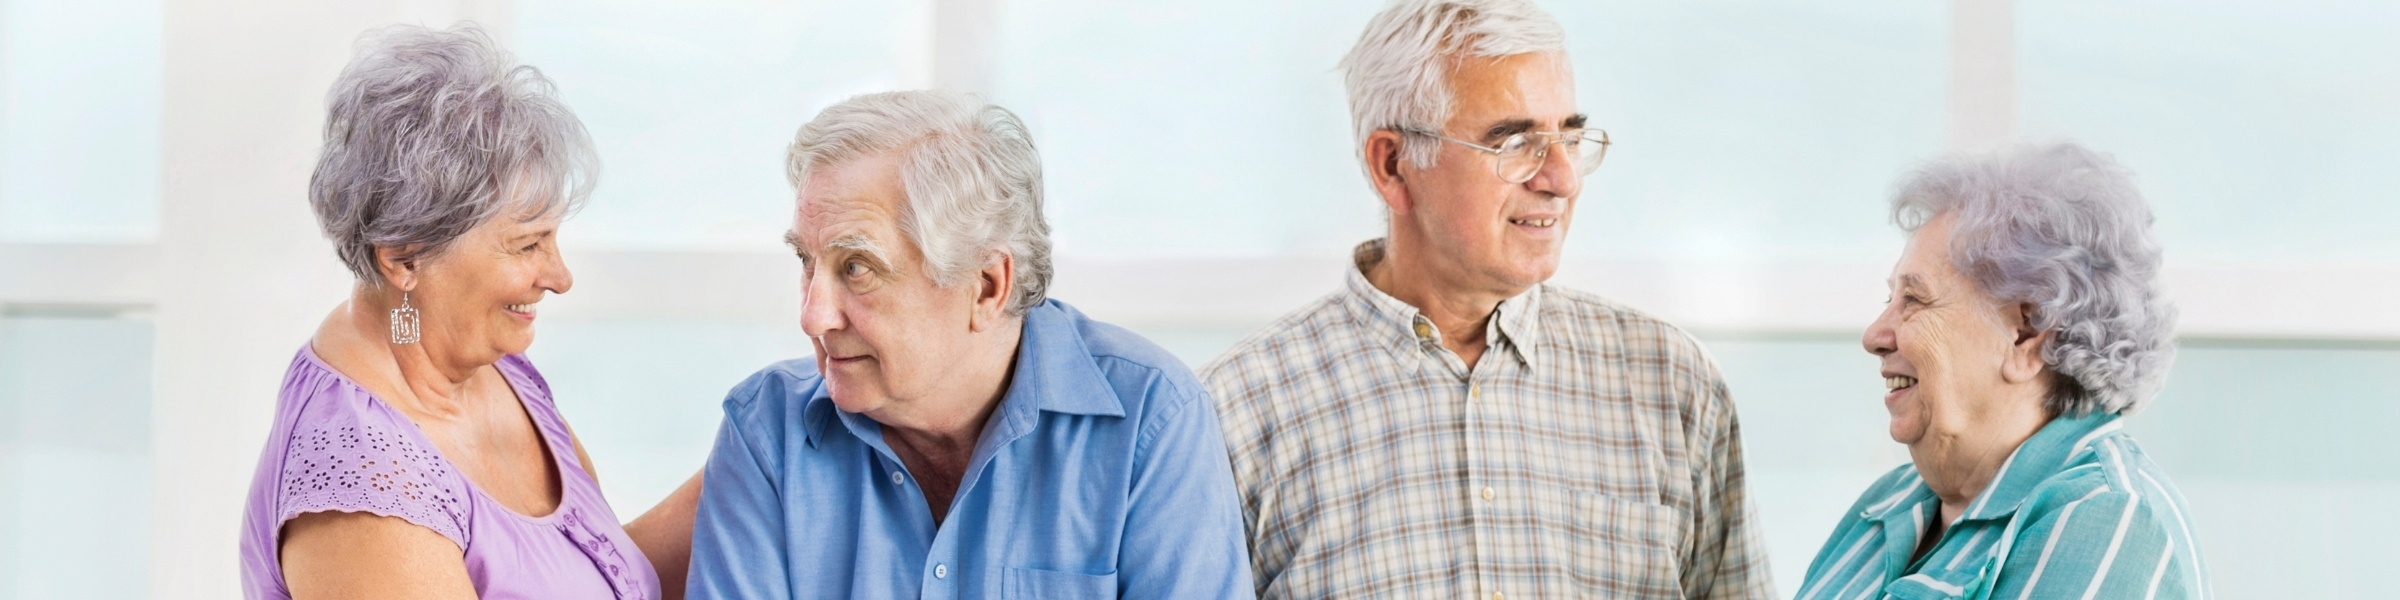 Senior Living Communities Featured Image for Hearing Aid 911